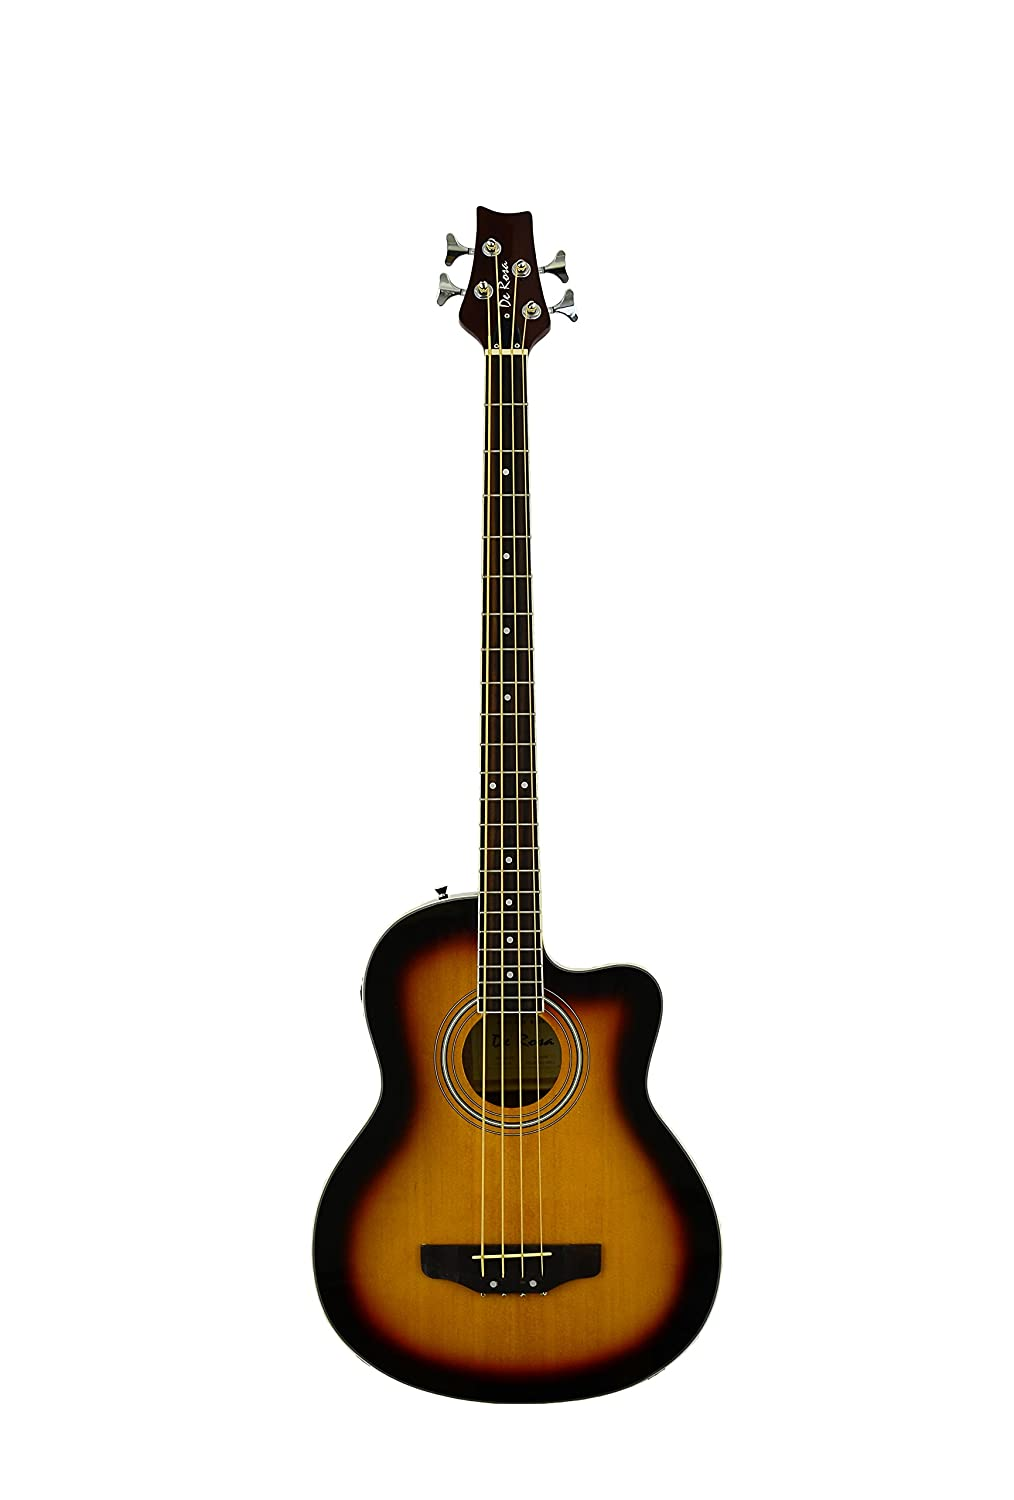 DeRosa GAB47 4 String Cutaway Acoustic-Electric Bass Guitar-TOBACCO SUNBURST Bridgecraft GAB47-TS